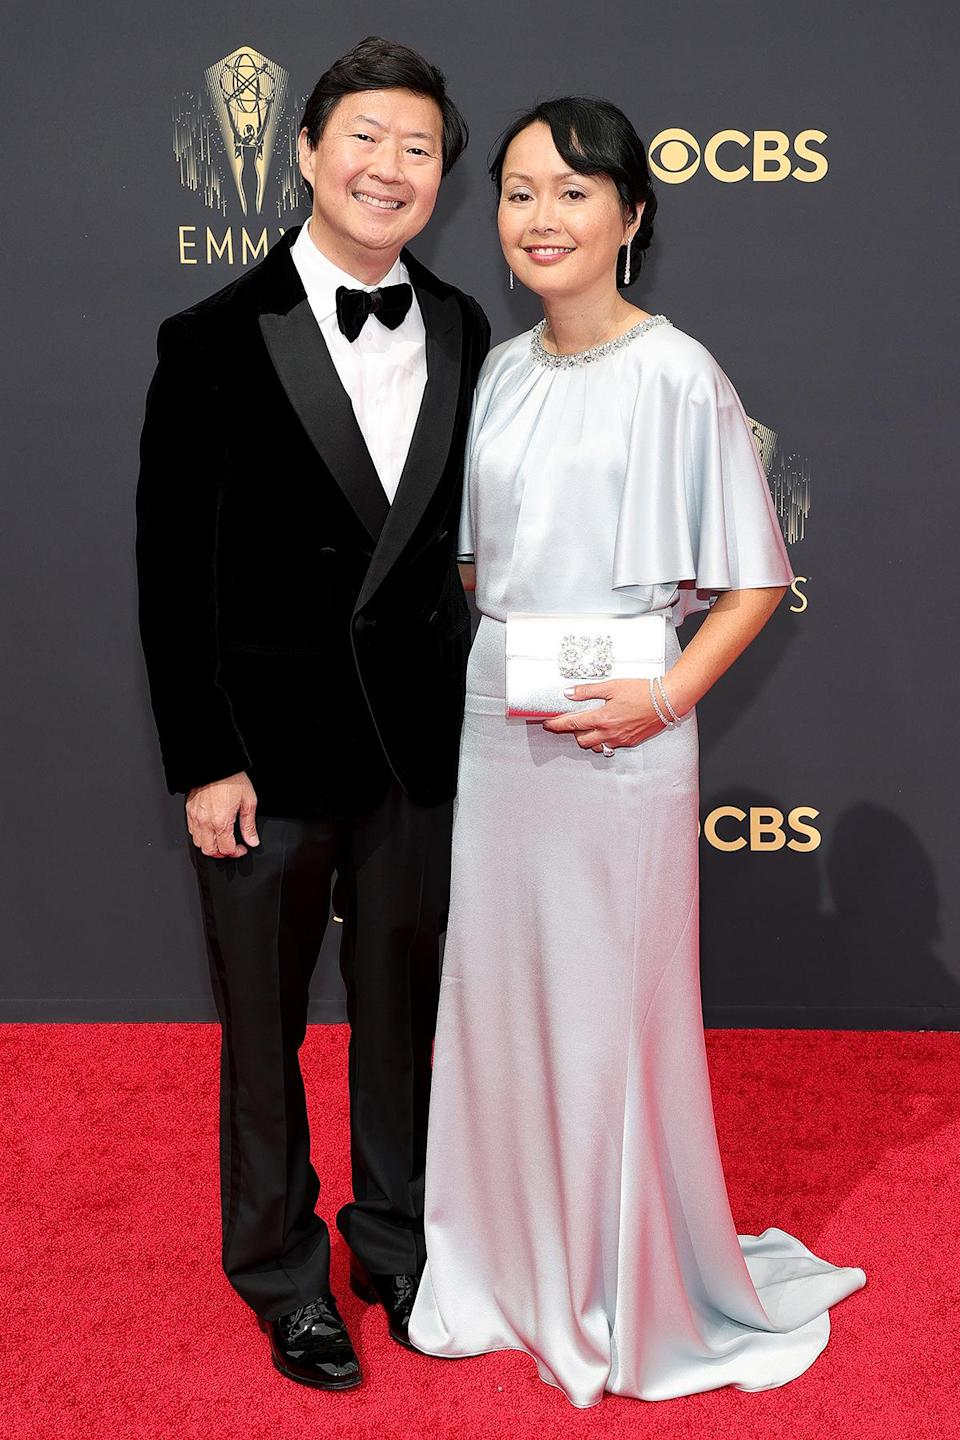 <p>Actor Ken Jeong and wife Tran cleaned up well for the red carpet, with Ken looking dapper in a velvet tux and Tran shimmering in silver. </p>